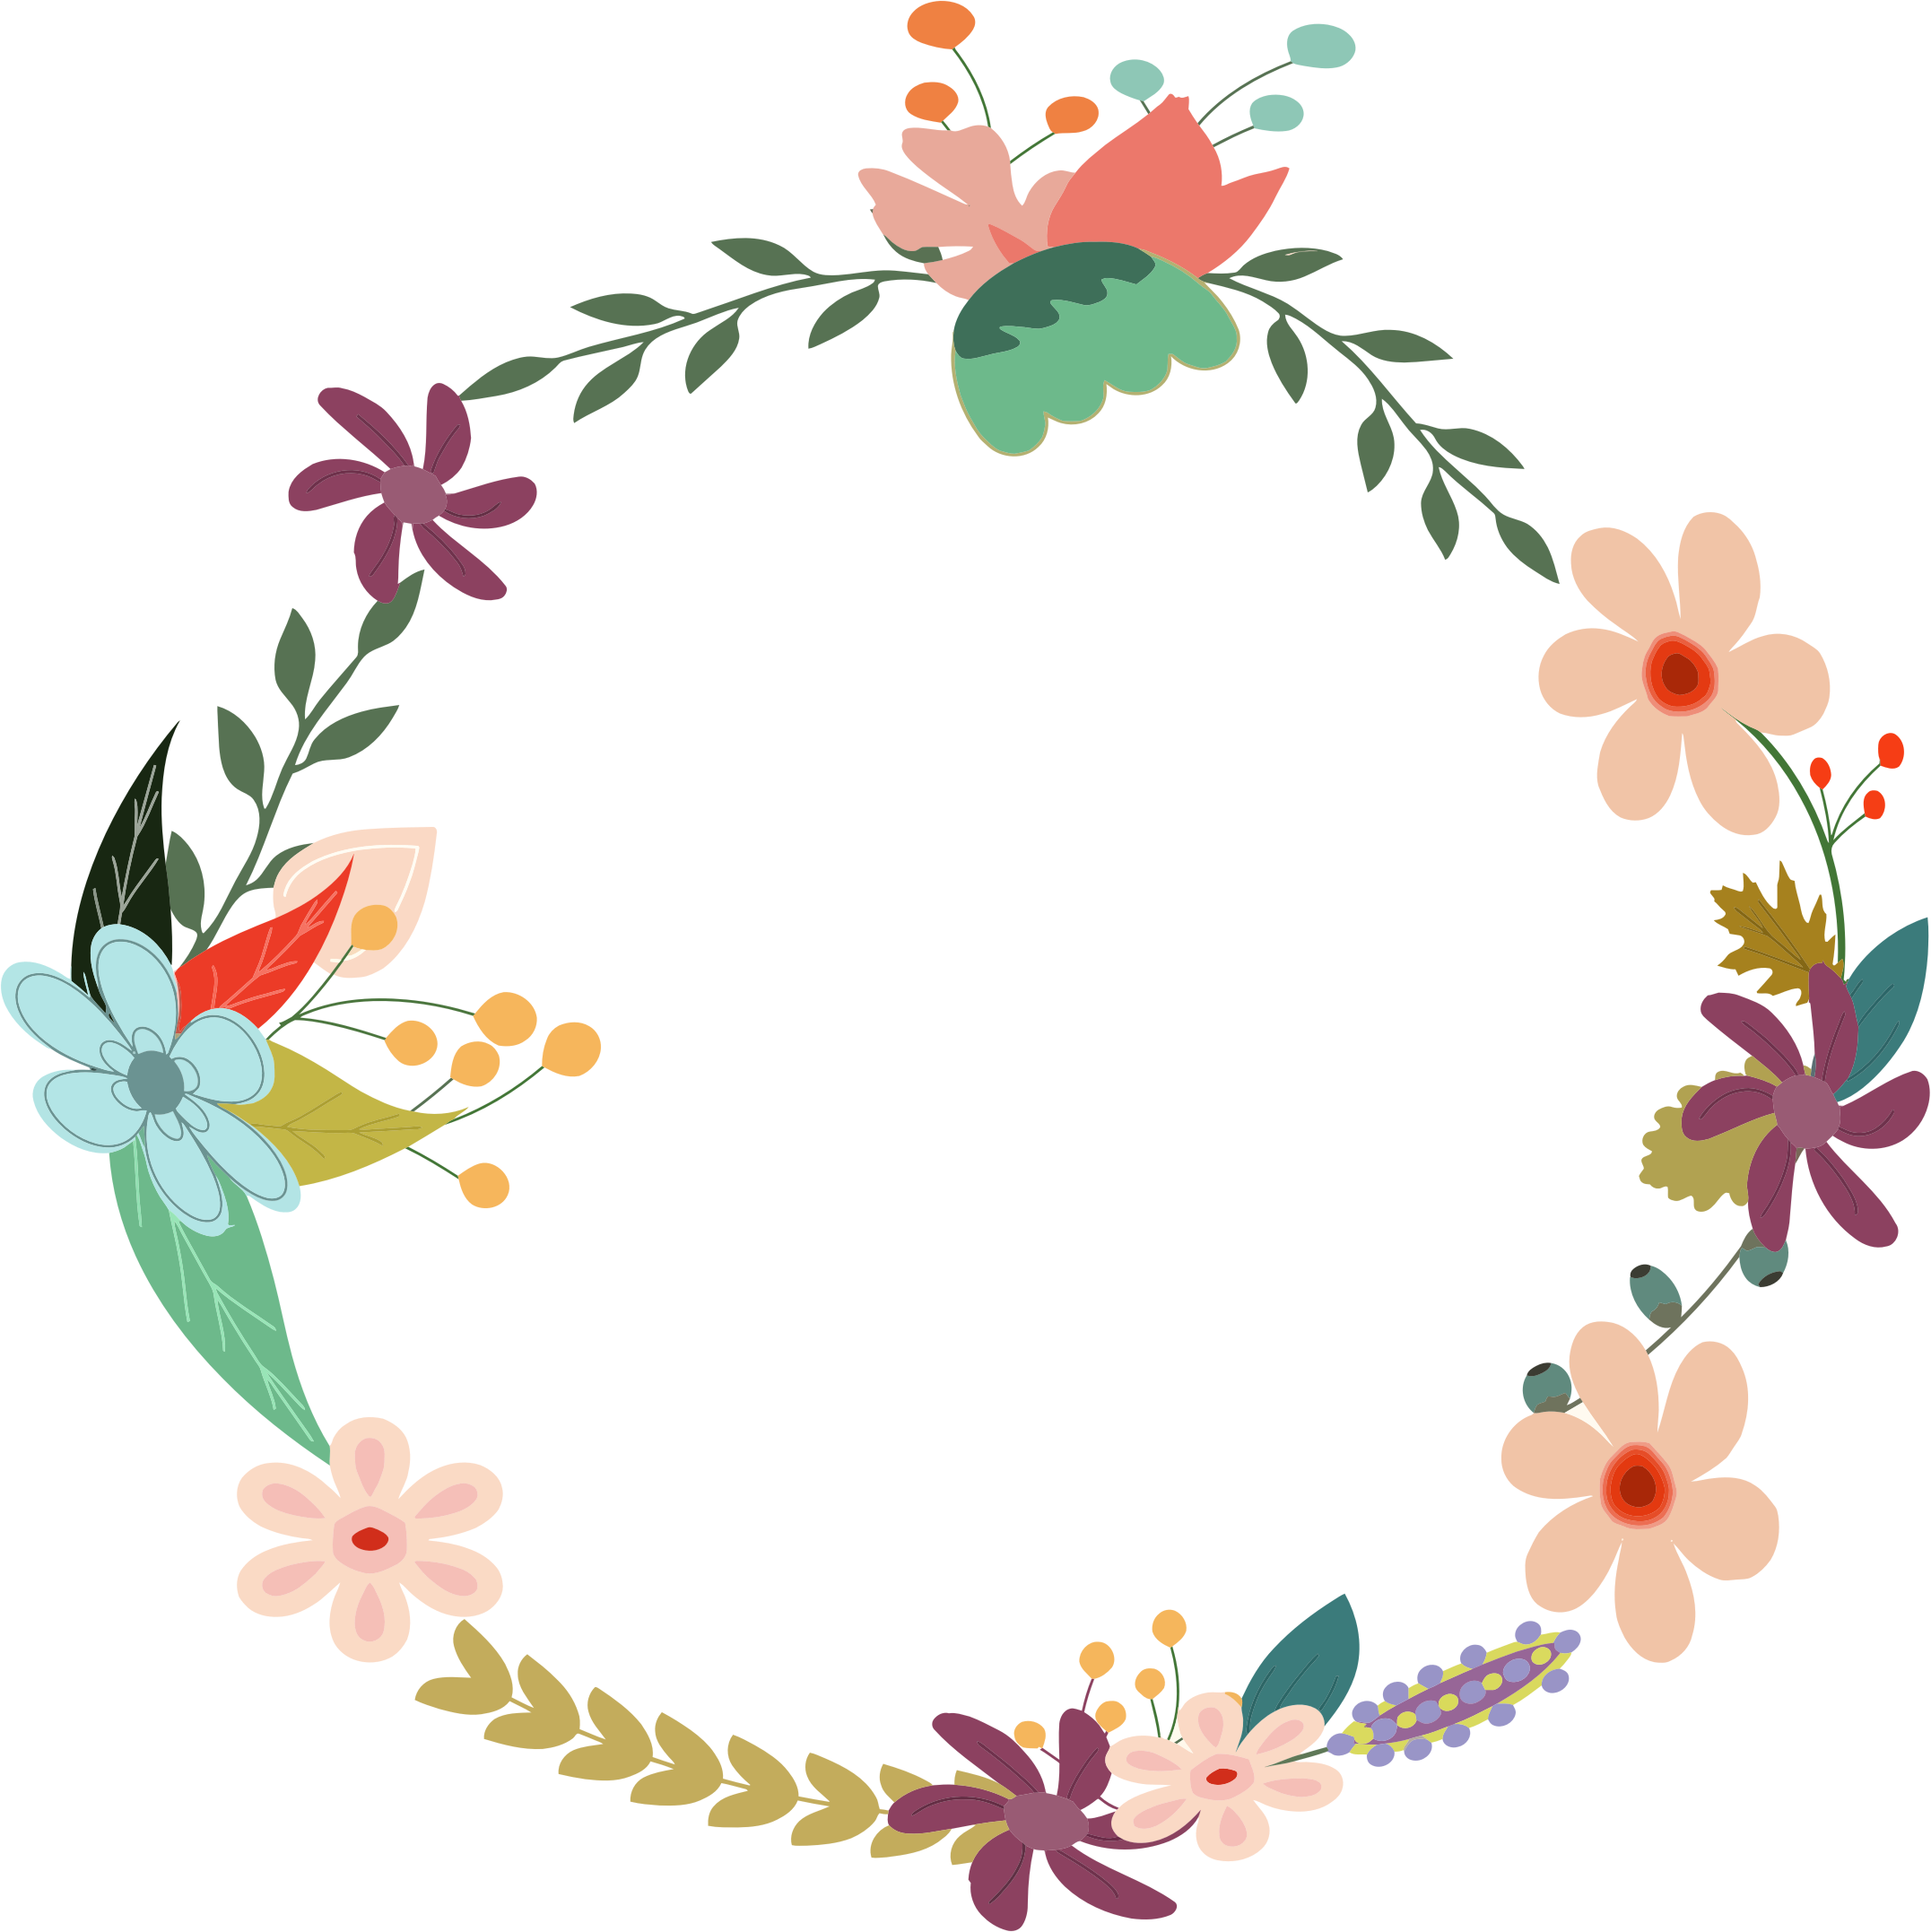 Floral wreath png. Vintage icons free and